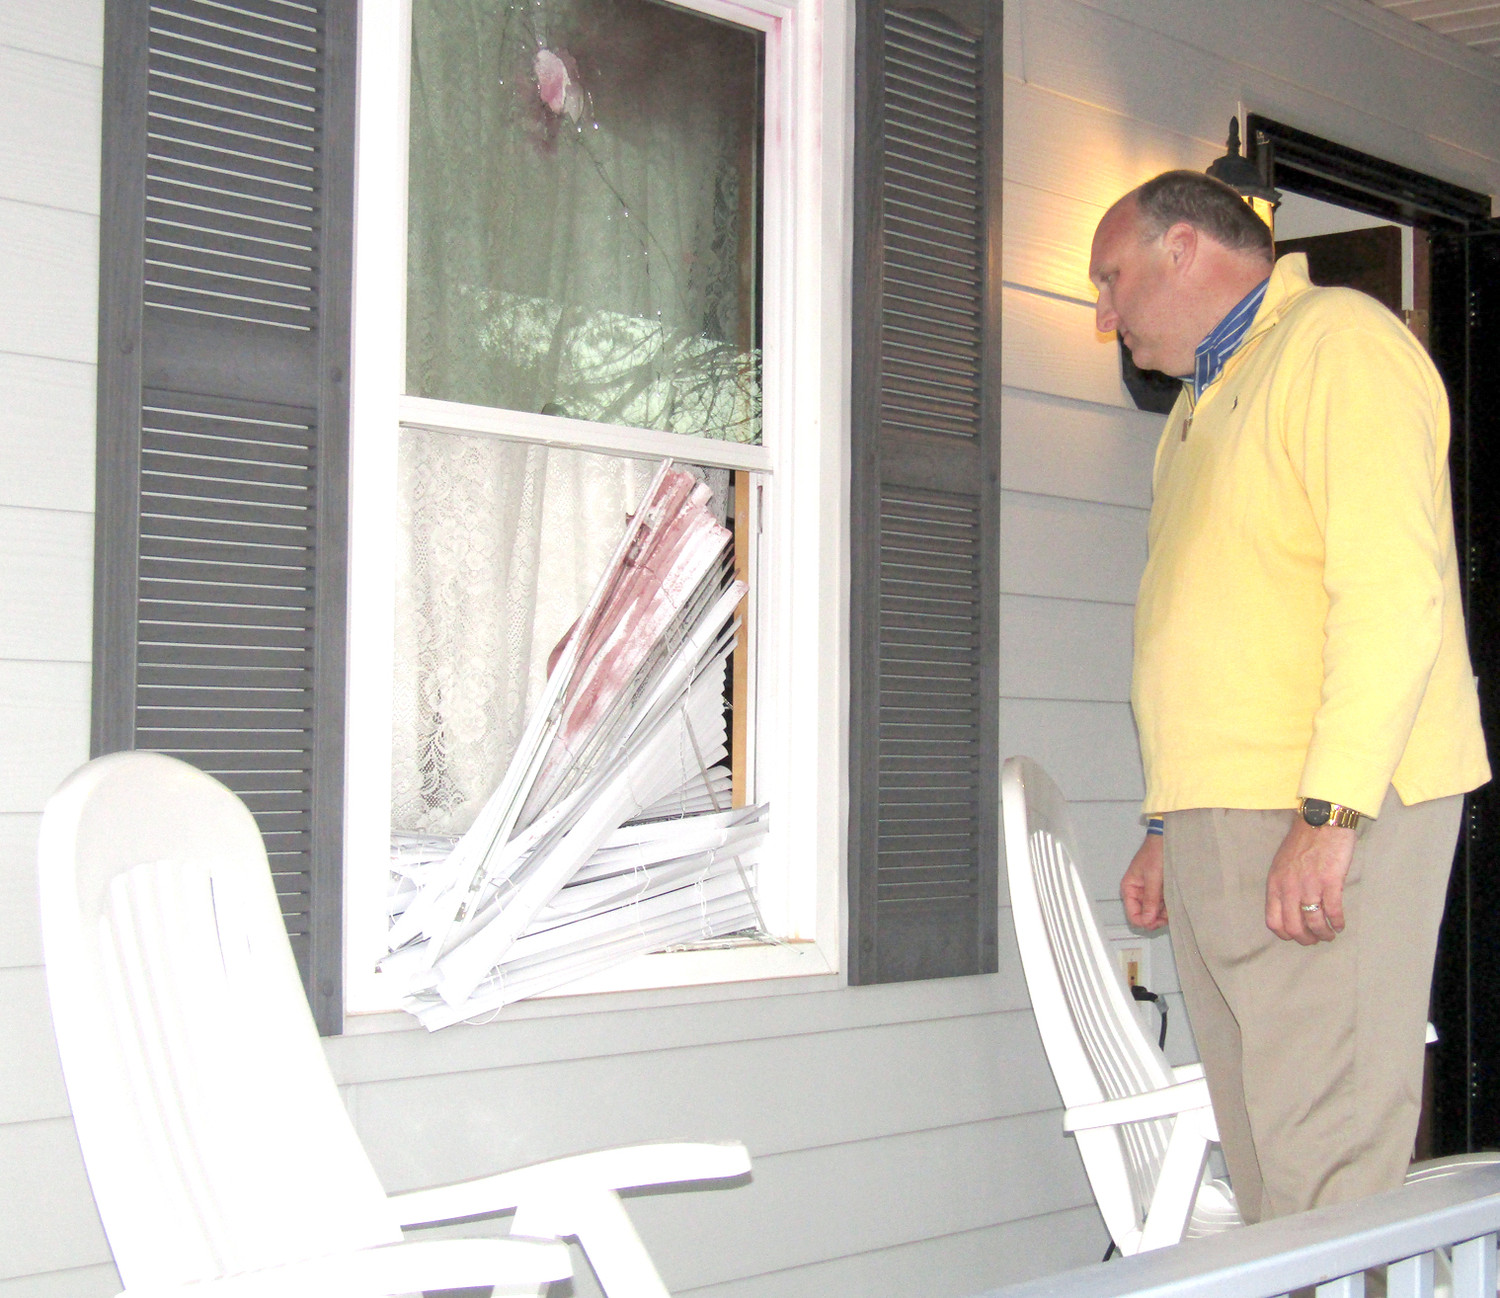 SHERIFF ERIC WATSON shows where a couple smashed through the front window of a Royal Oaks subdivision residence. The stains on the window blinds are from the tear gas that was used to flush out the pair of home invaders, who had barricaded themselves inside.